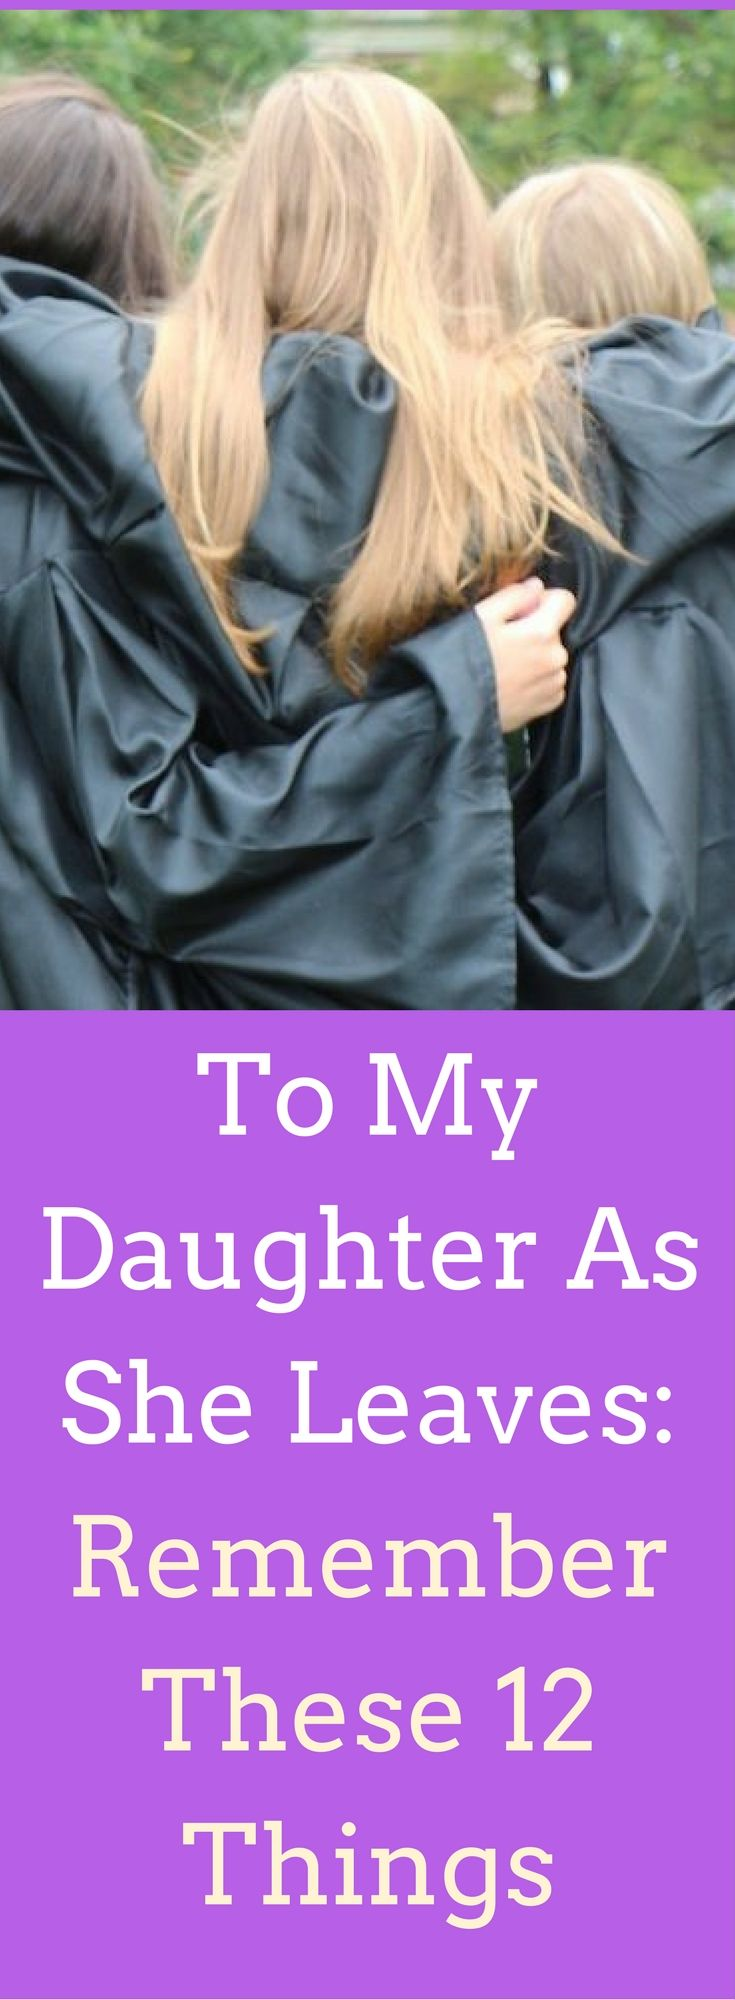 Graduation | Letter to My Daughter | High School Graduation | Advice for Daughter | Advice for Graduate